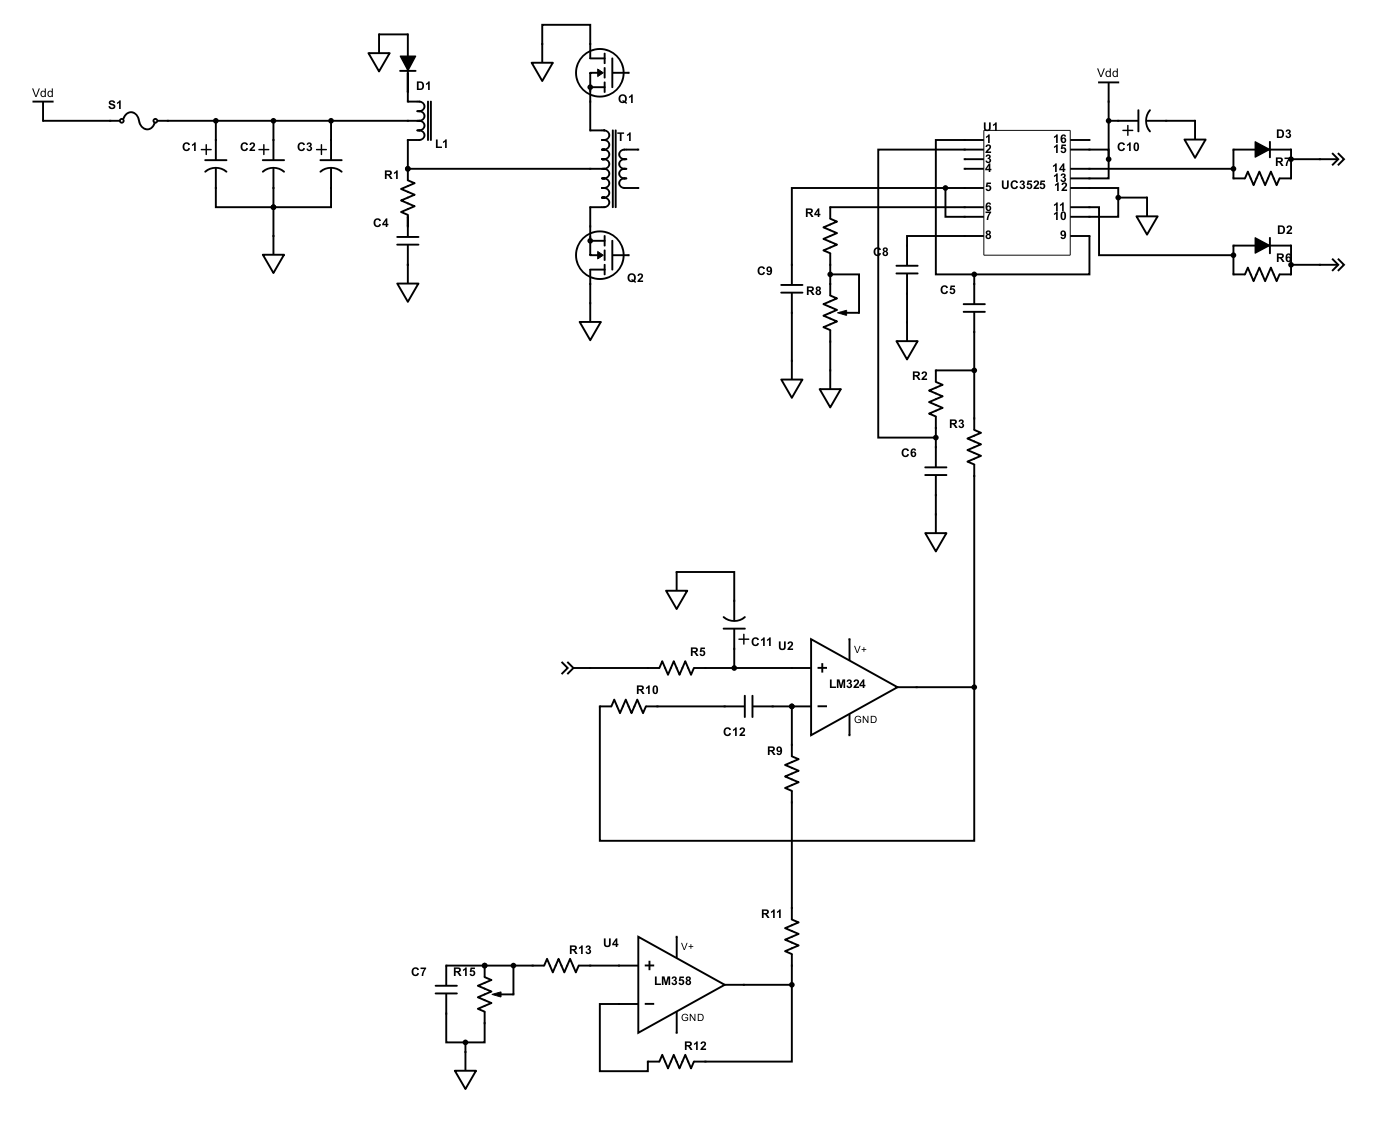 Resolved] LM358: Function of LM358 in circuit inverter